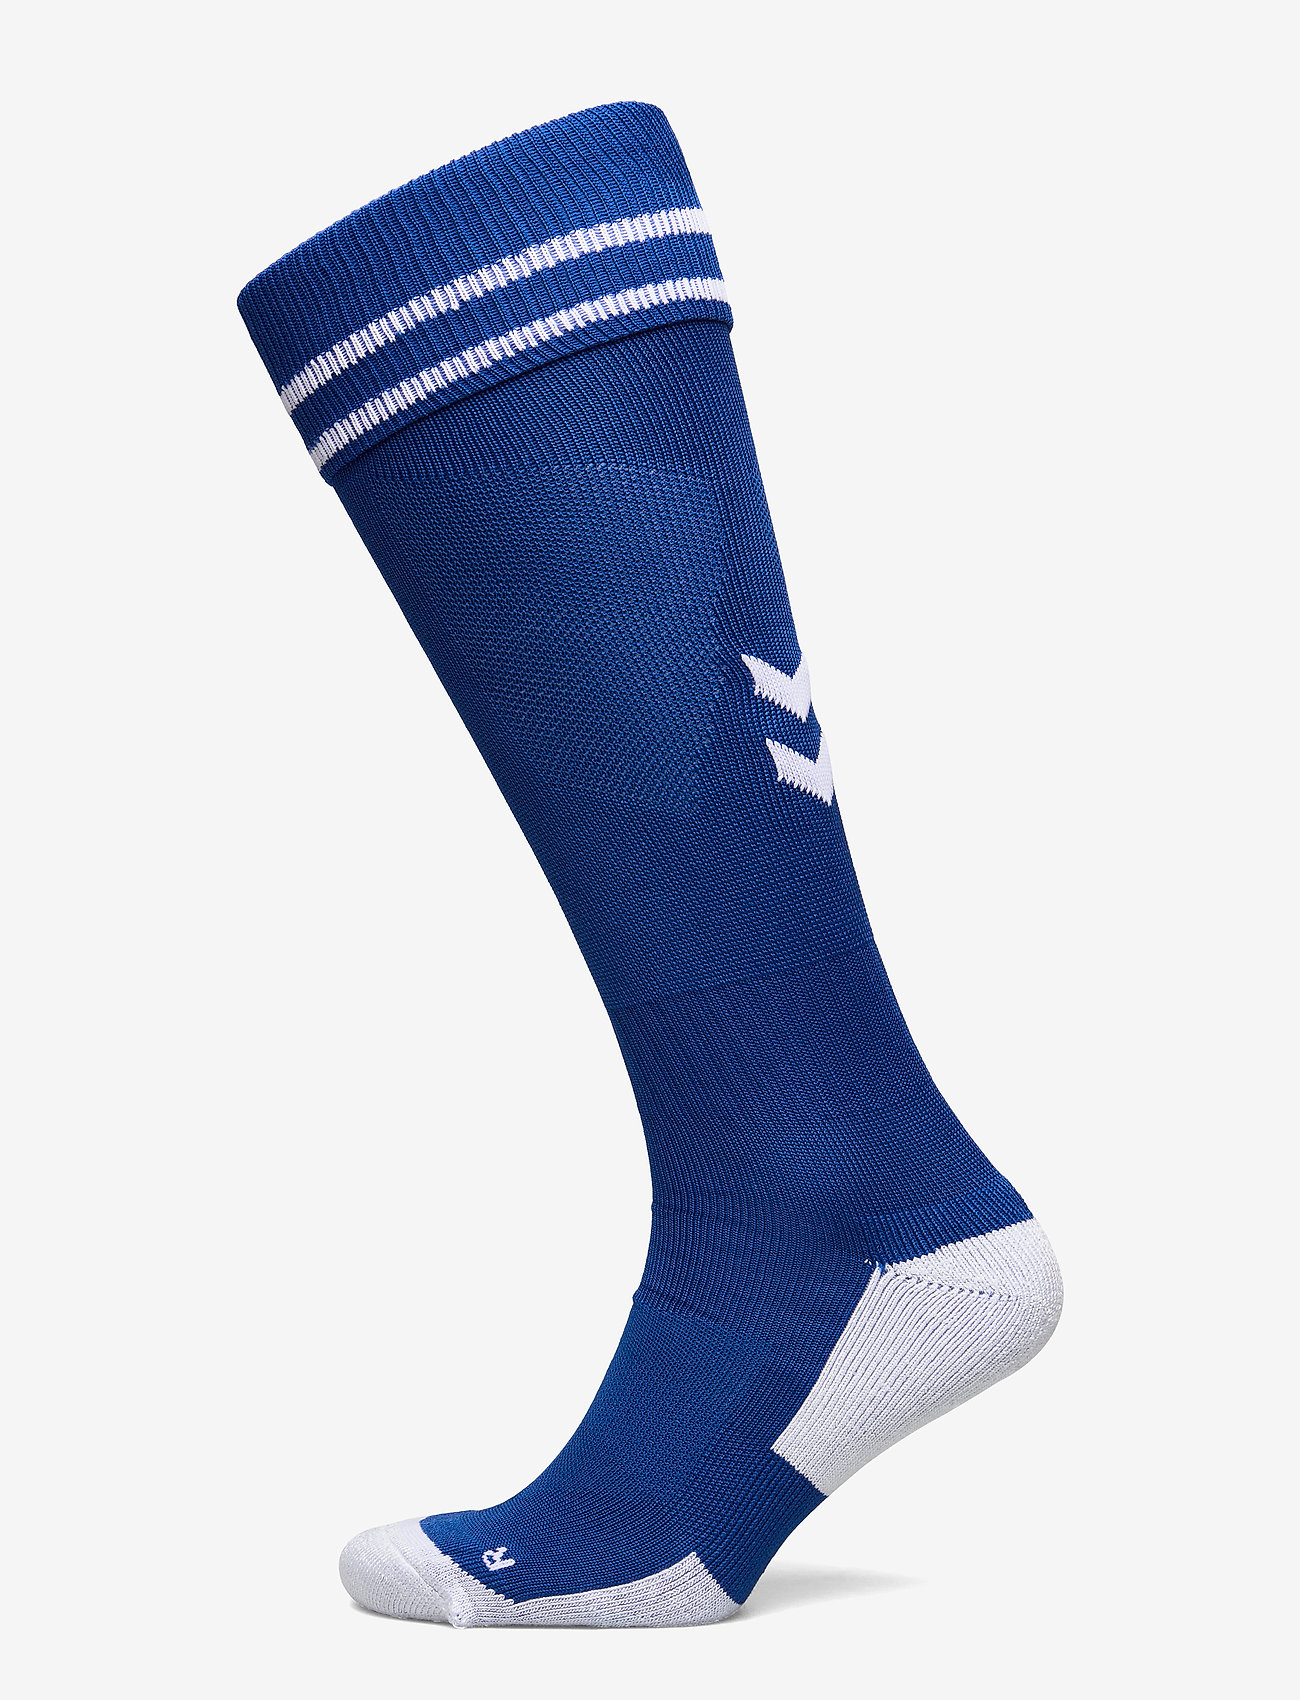 Hummel - ELEMENT FOOTBALL SOCK - fodboldsokker - true blue/white - 0